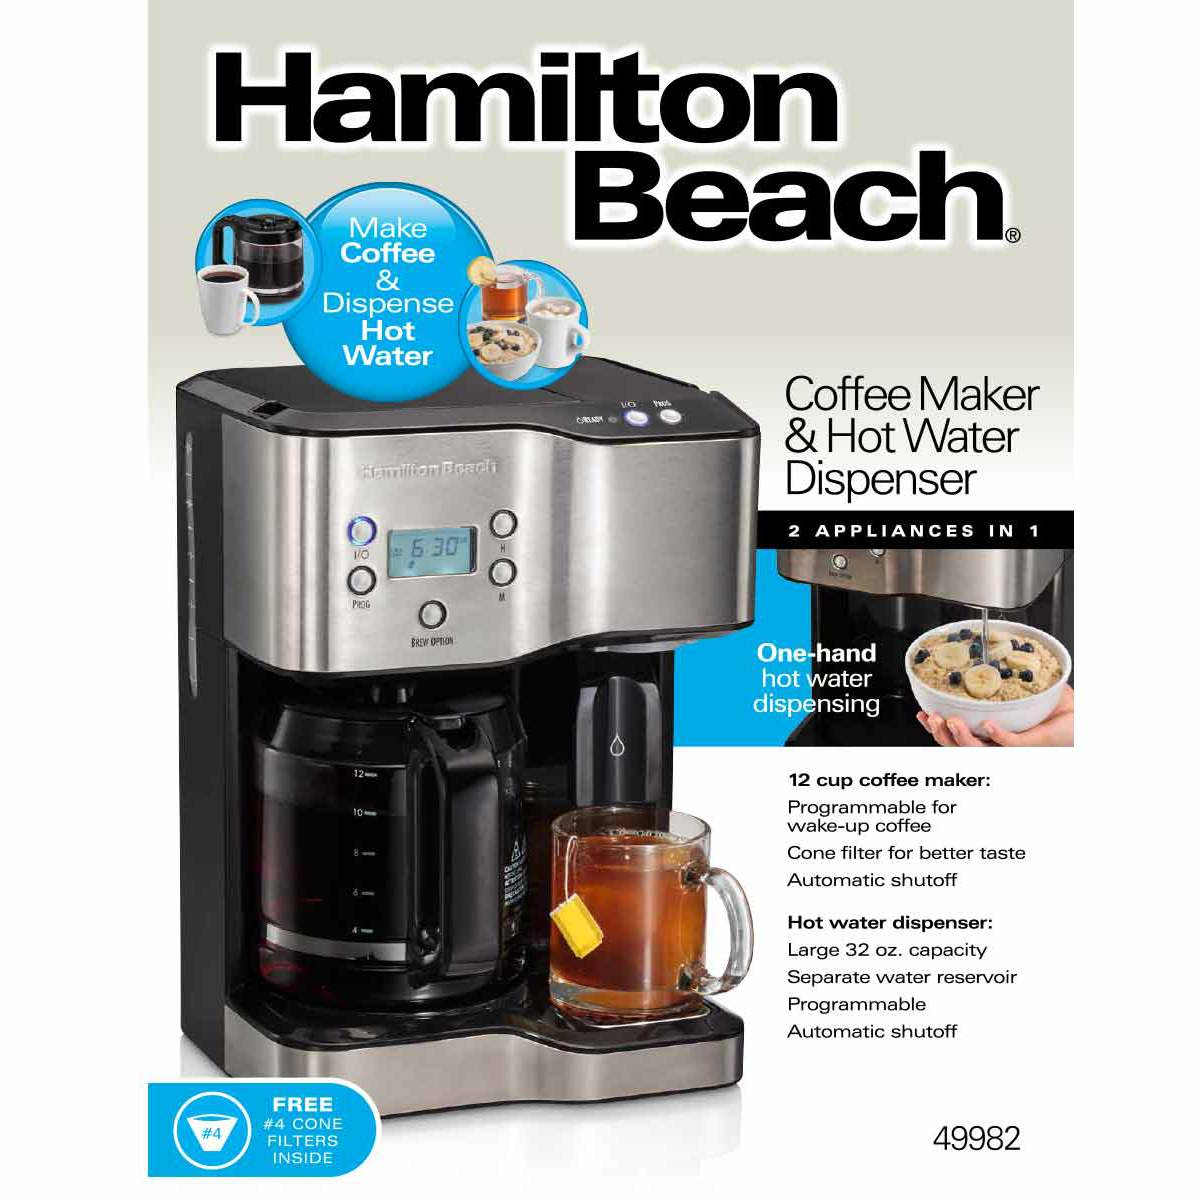 Hamilton Beach Coffee Maker & Hot Water Dispenser - 49982